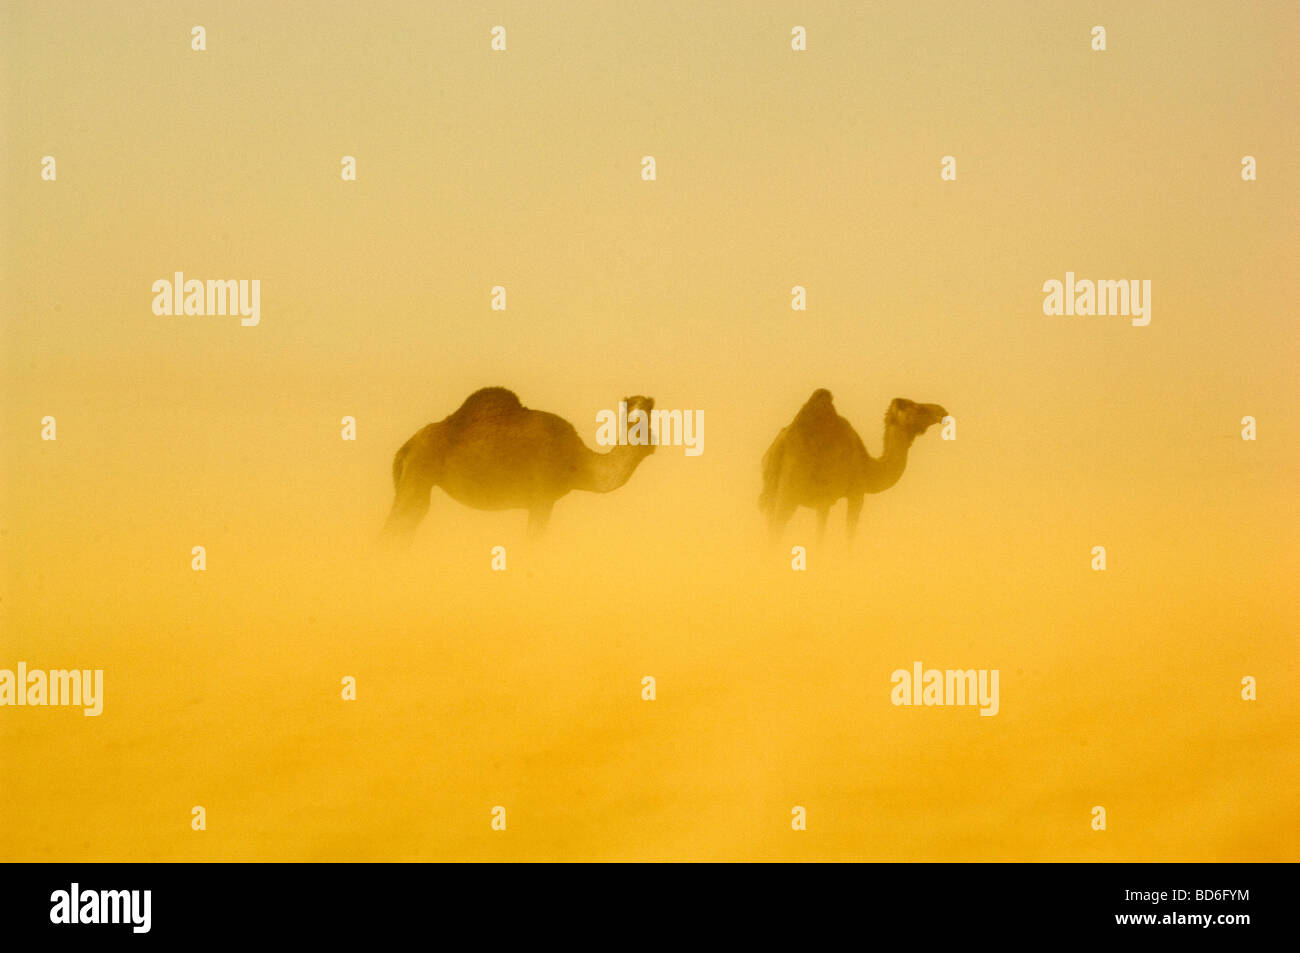 Arab Moors who live in the remote town of Boujbeja struggle to survive in the harsh desert Boujbeja means the luck - Stock Image